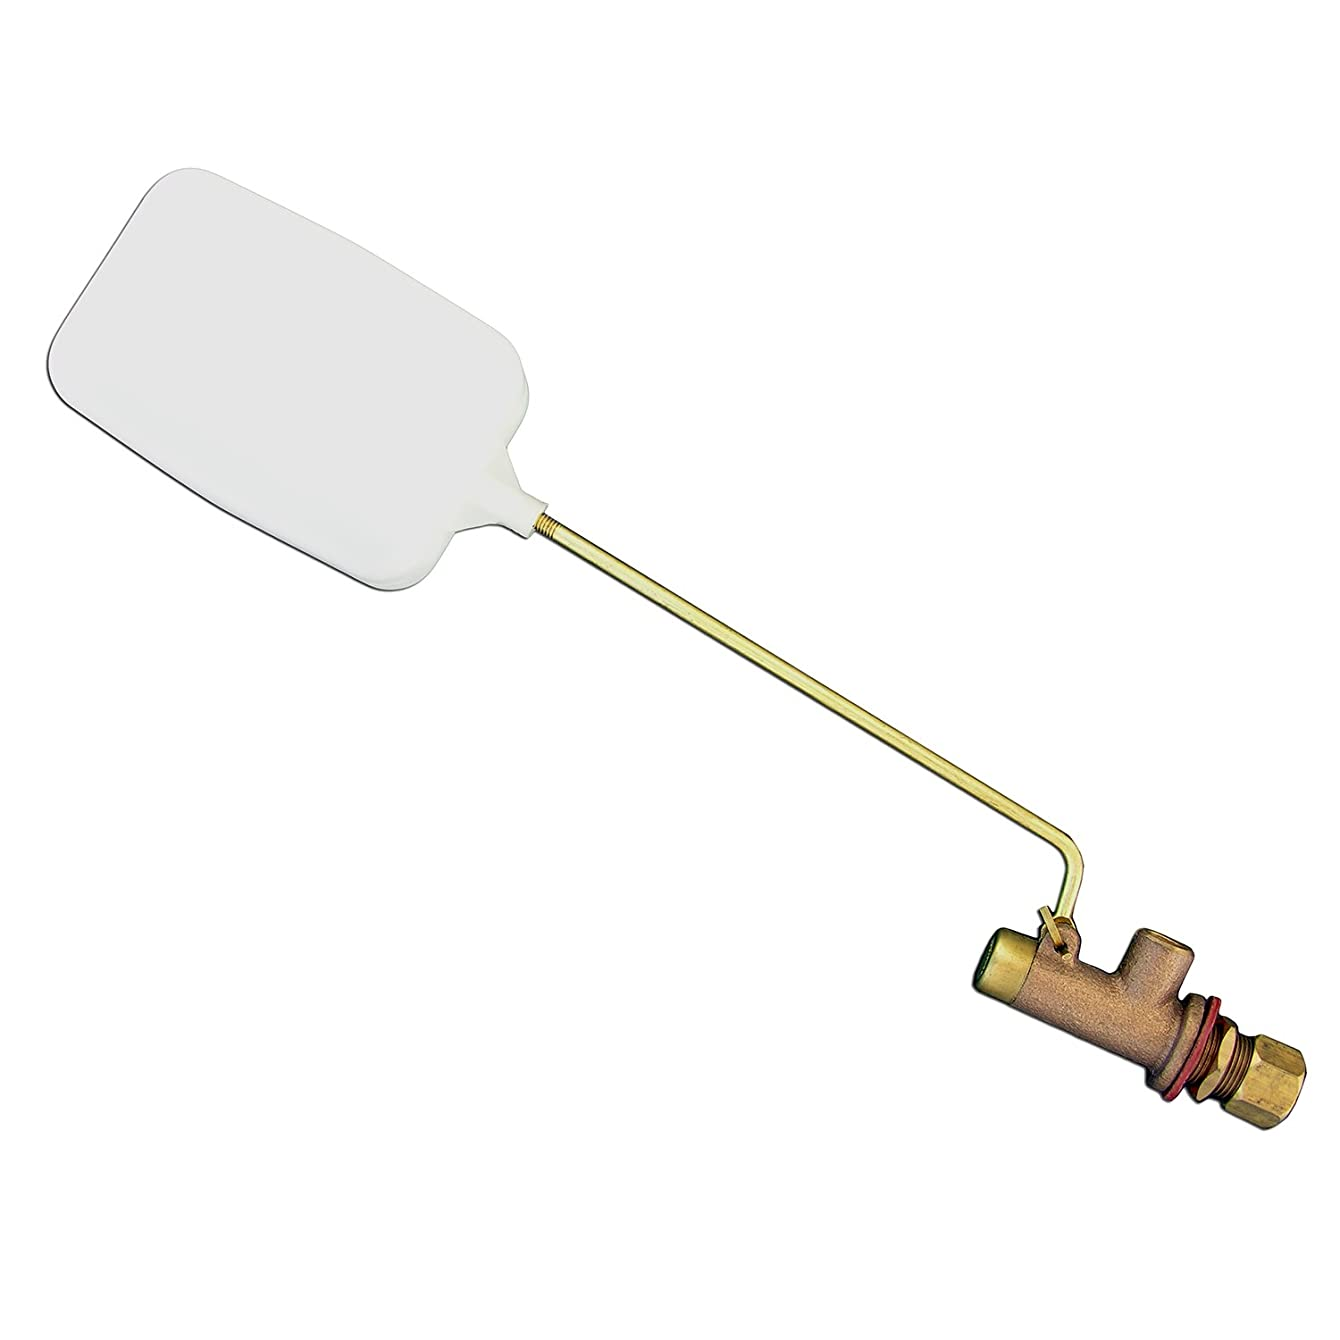 LASCO 05-1058 Heavy Duty 3/8-Inch Compression Evaporative Swamp Cooler Float Valve, Brass